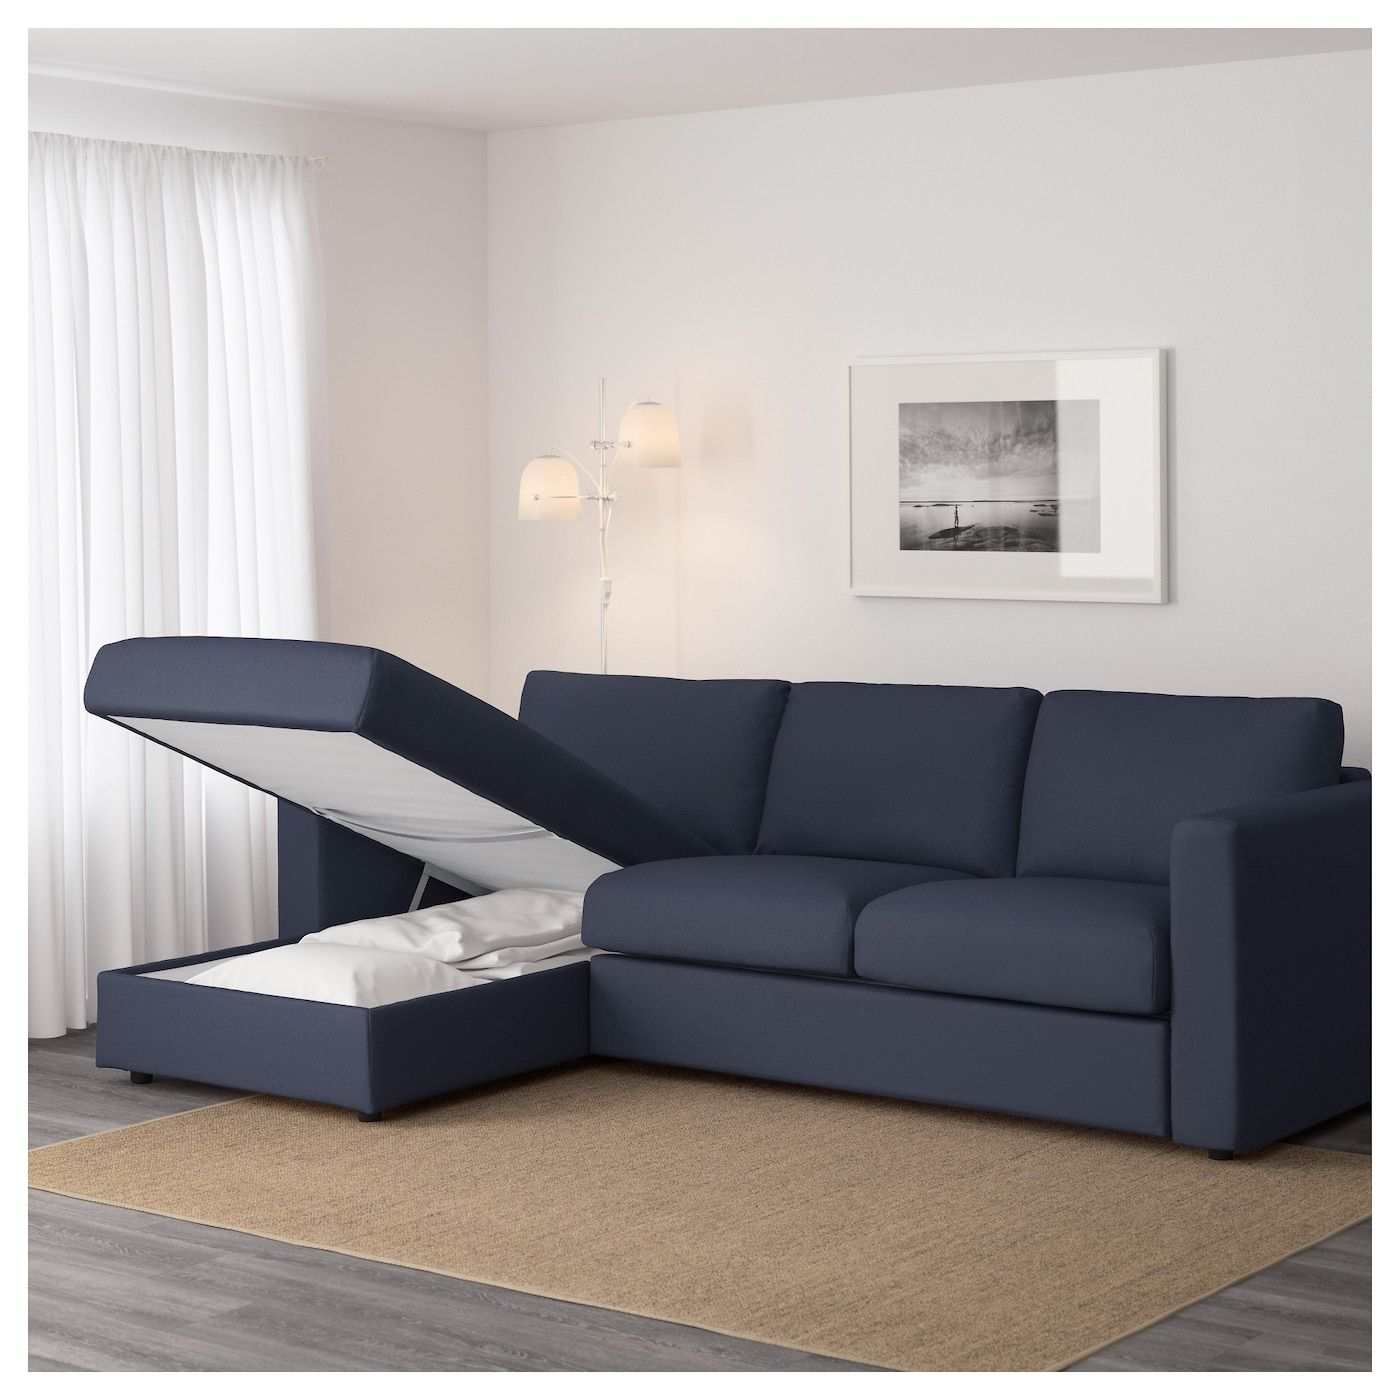 IKEA VIMLE Sofa with chaise, Orrsta blackblue Unique